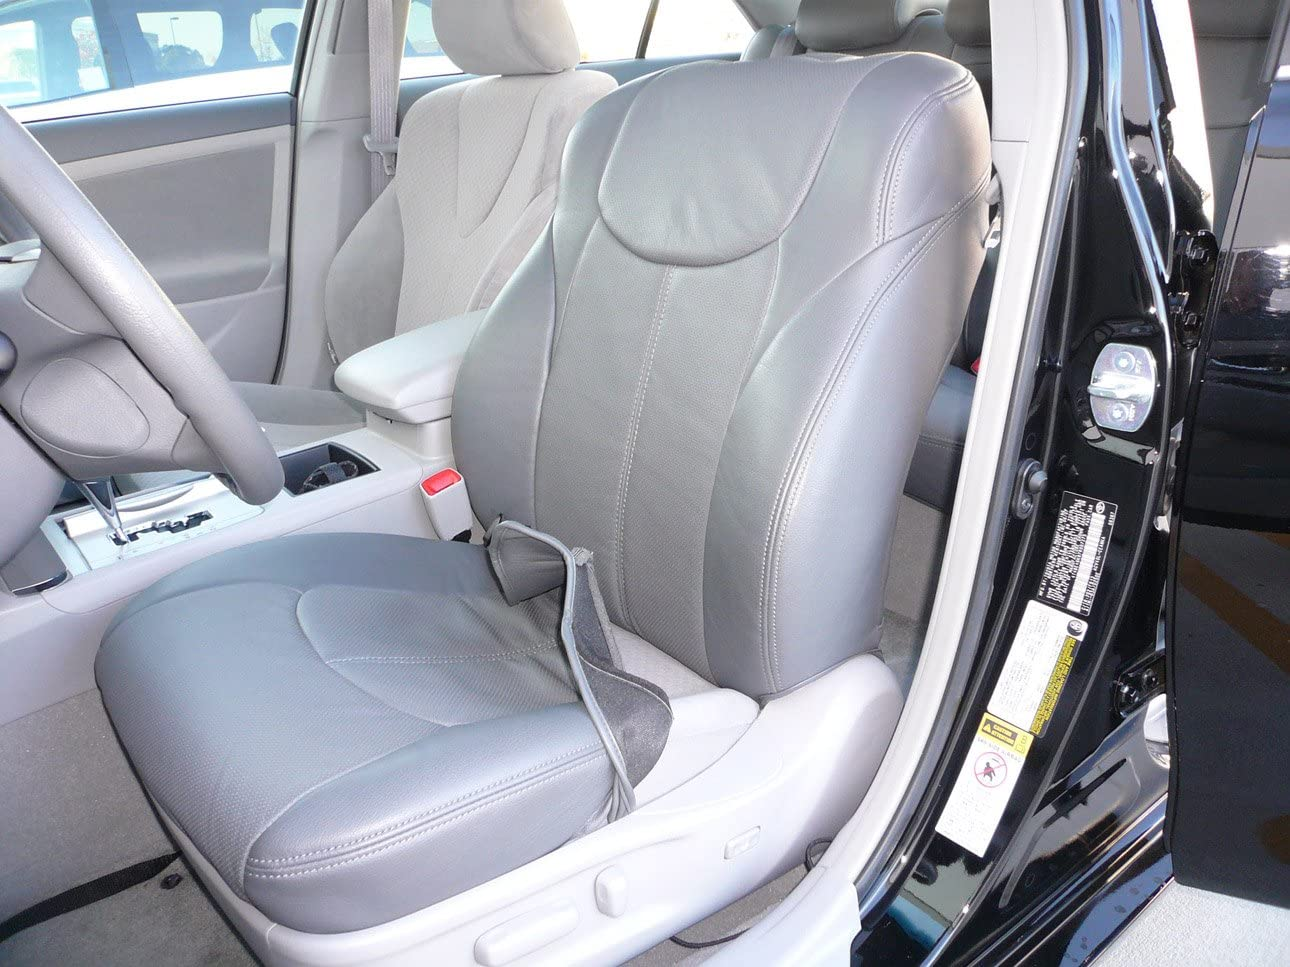 Clazzio 230621gryy Grey Leather Front Row Seat Cover for Toyota Prius V